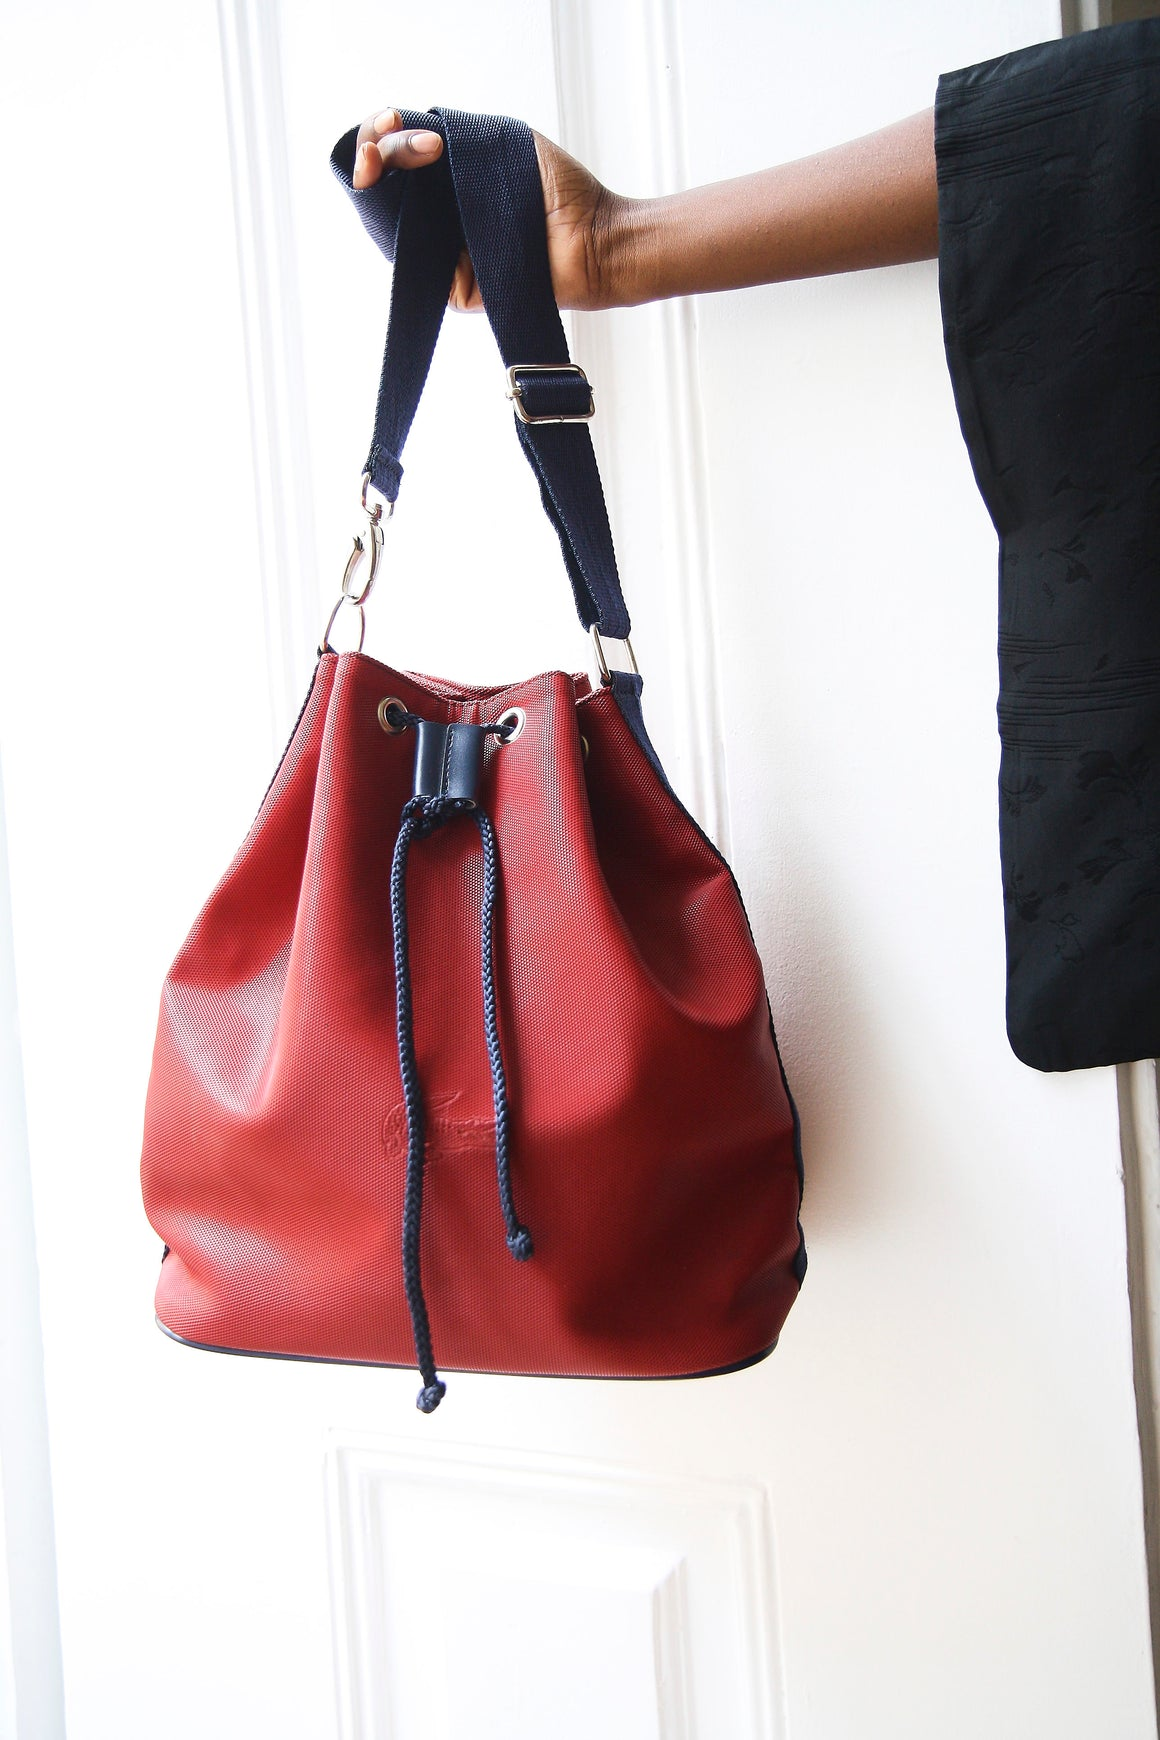 Lacoste Red Bucket Bag